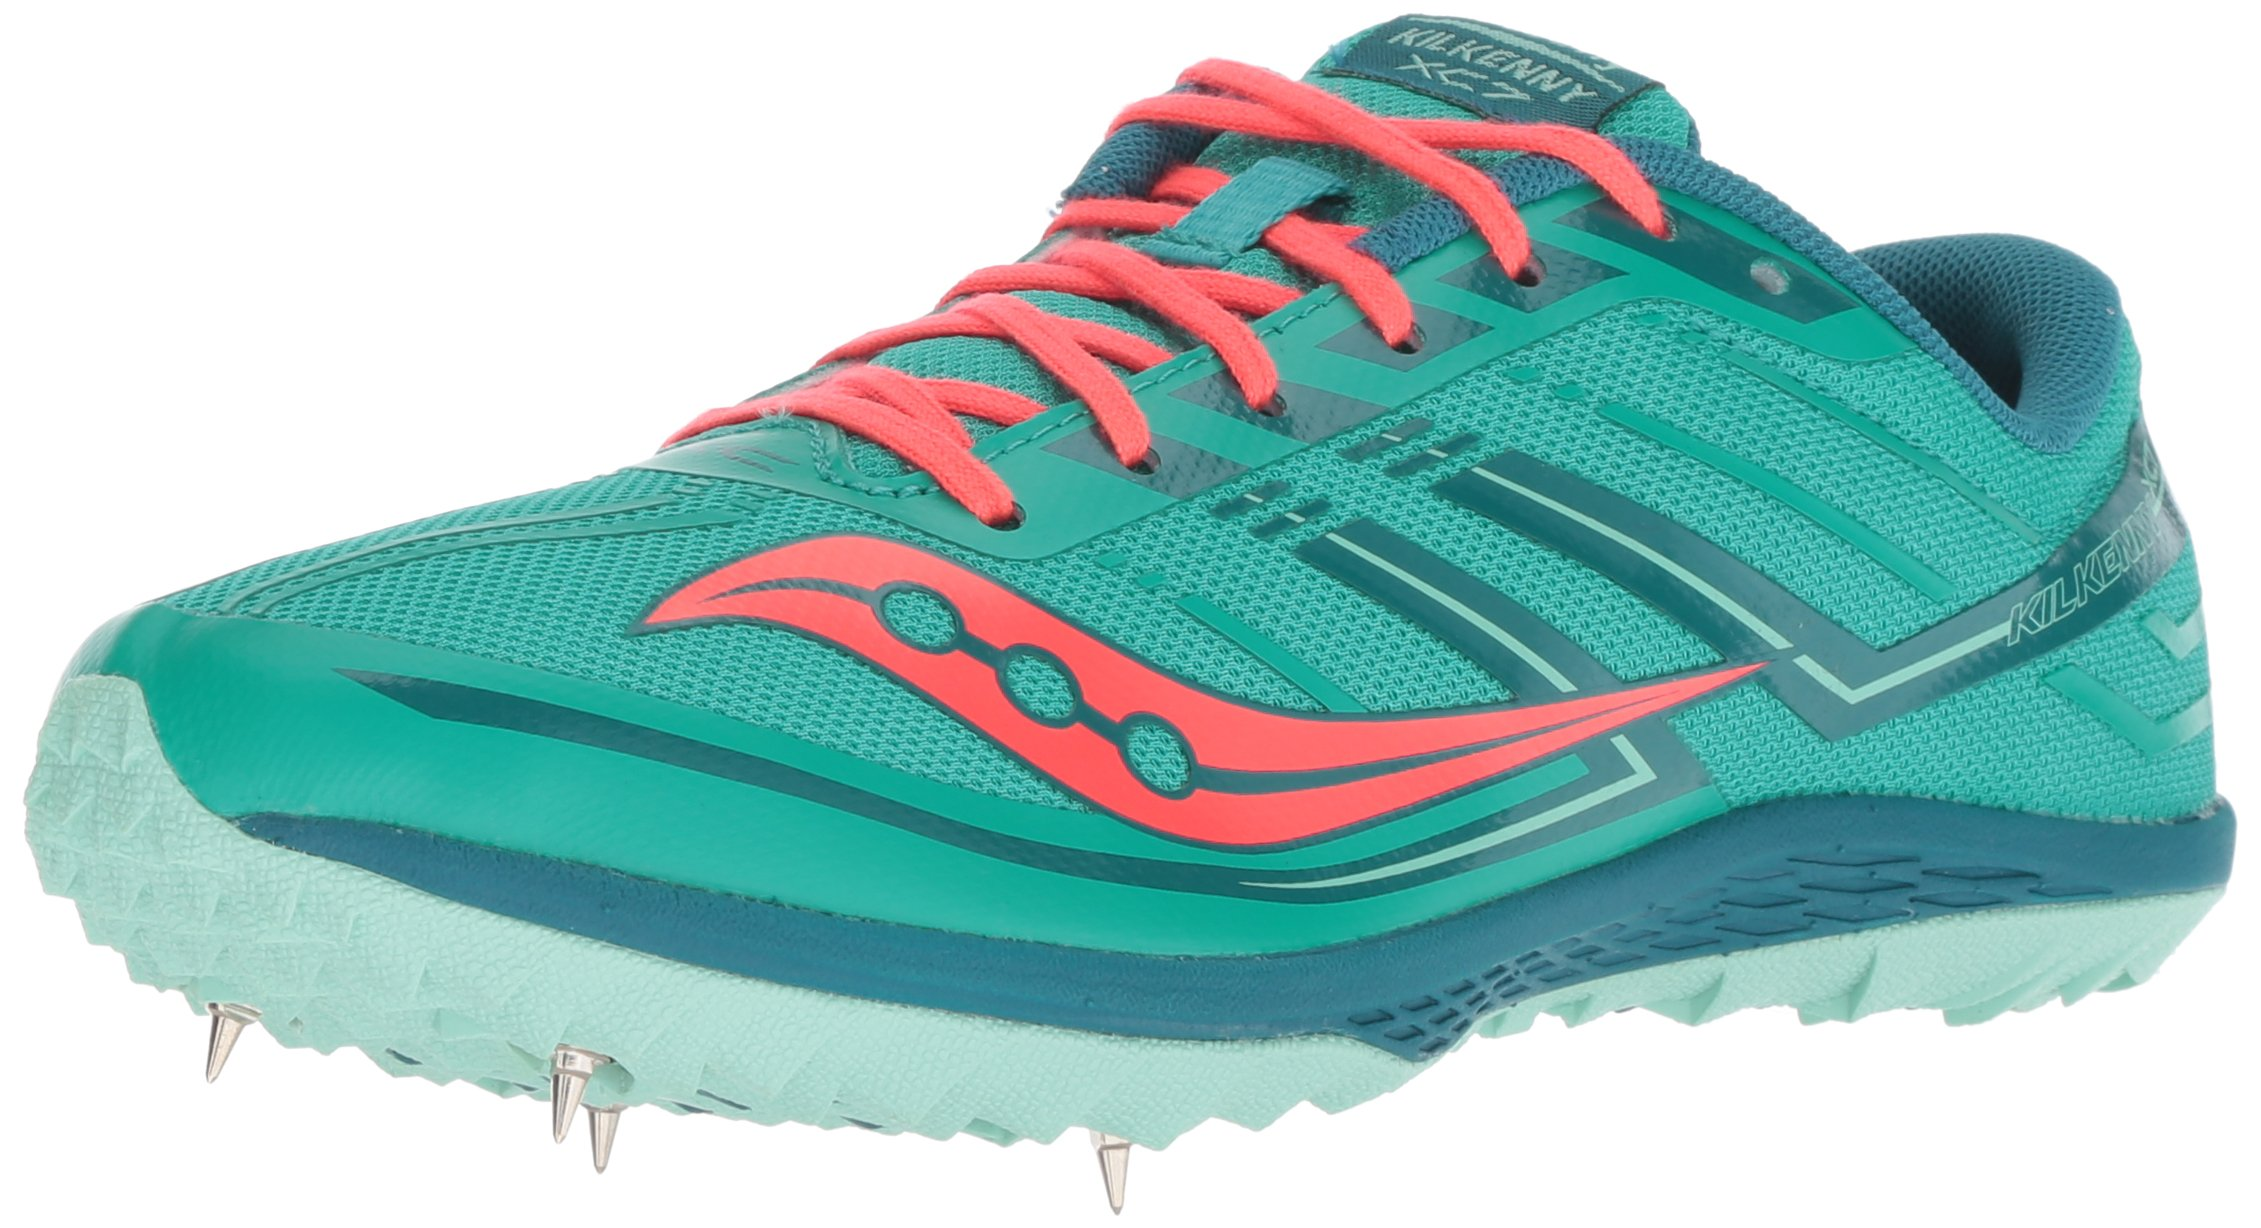 Saucony Women's Kilkenny XC7 Track Shoe, Teal/red, 5 M US by Saucony